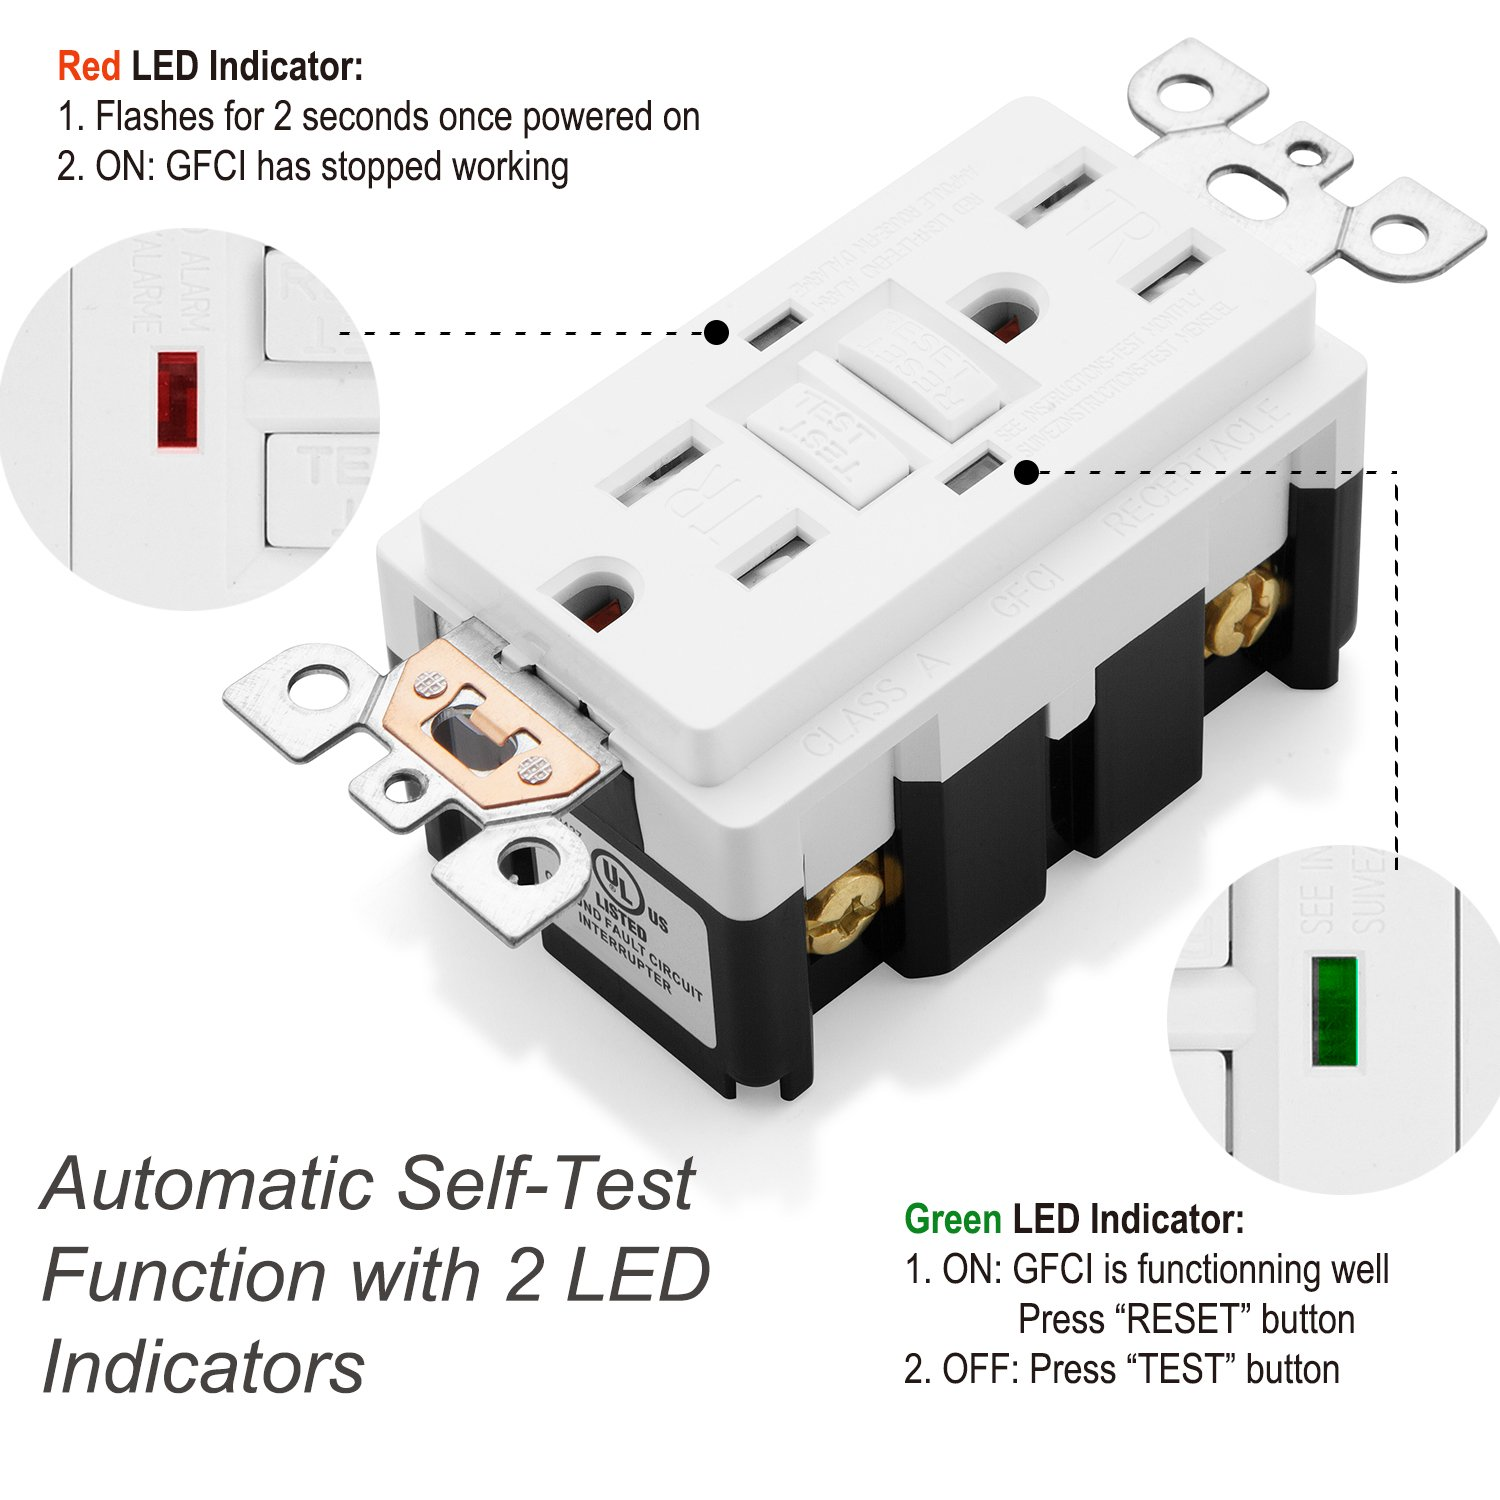 [10 Pack] BESTTEN 15A Dual Indicator Self Test GFCI Receptacle, 15A/125V/1875W, Tamper Resistant Outlet, 2 Wall Plates and Screws Included, Auto-Test Function, UL Certified, White by BESTTEN (Image #3)